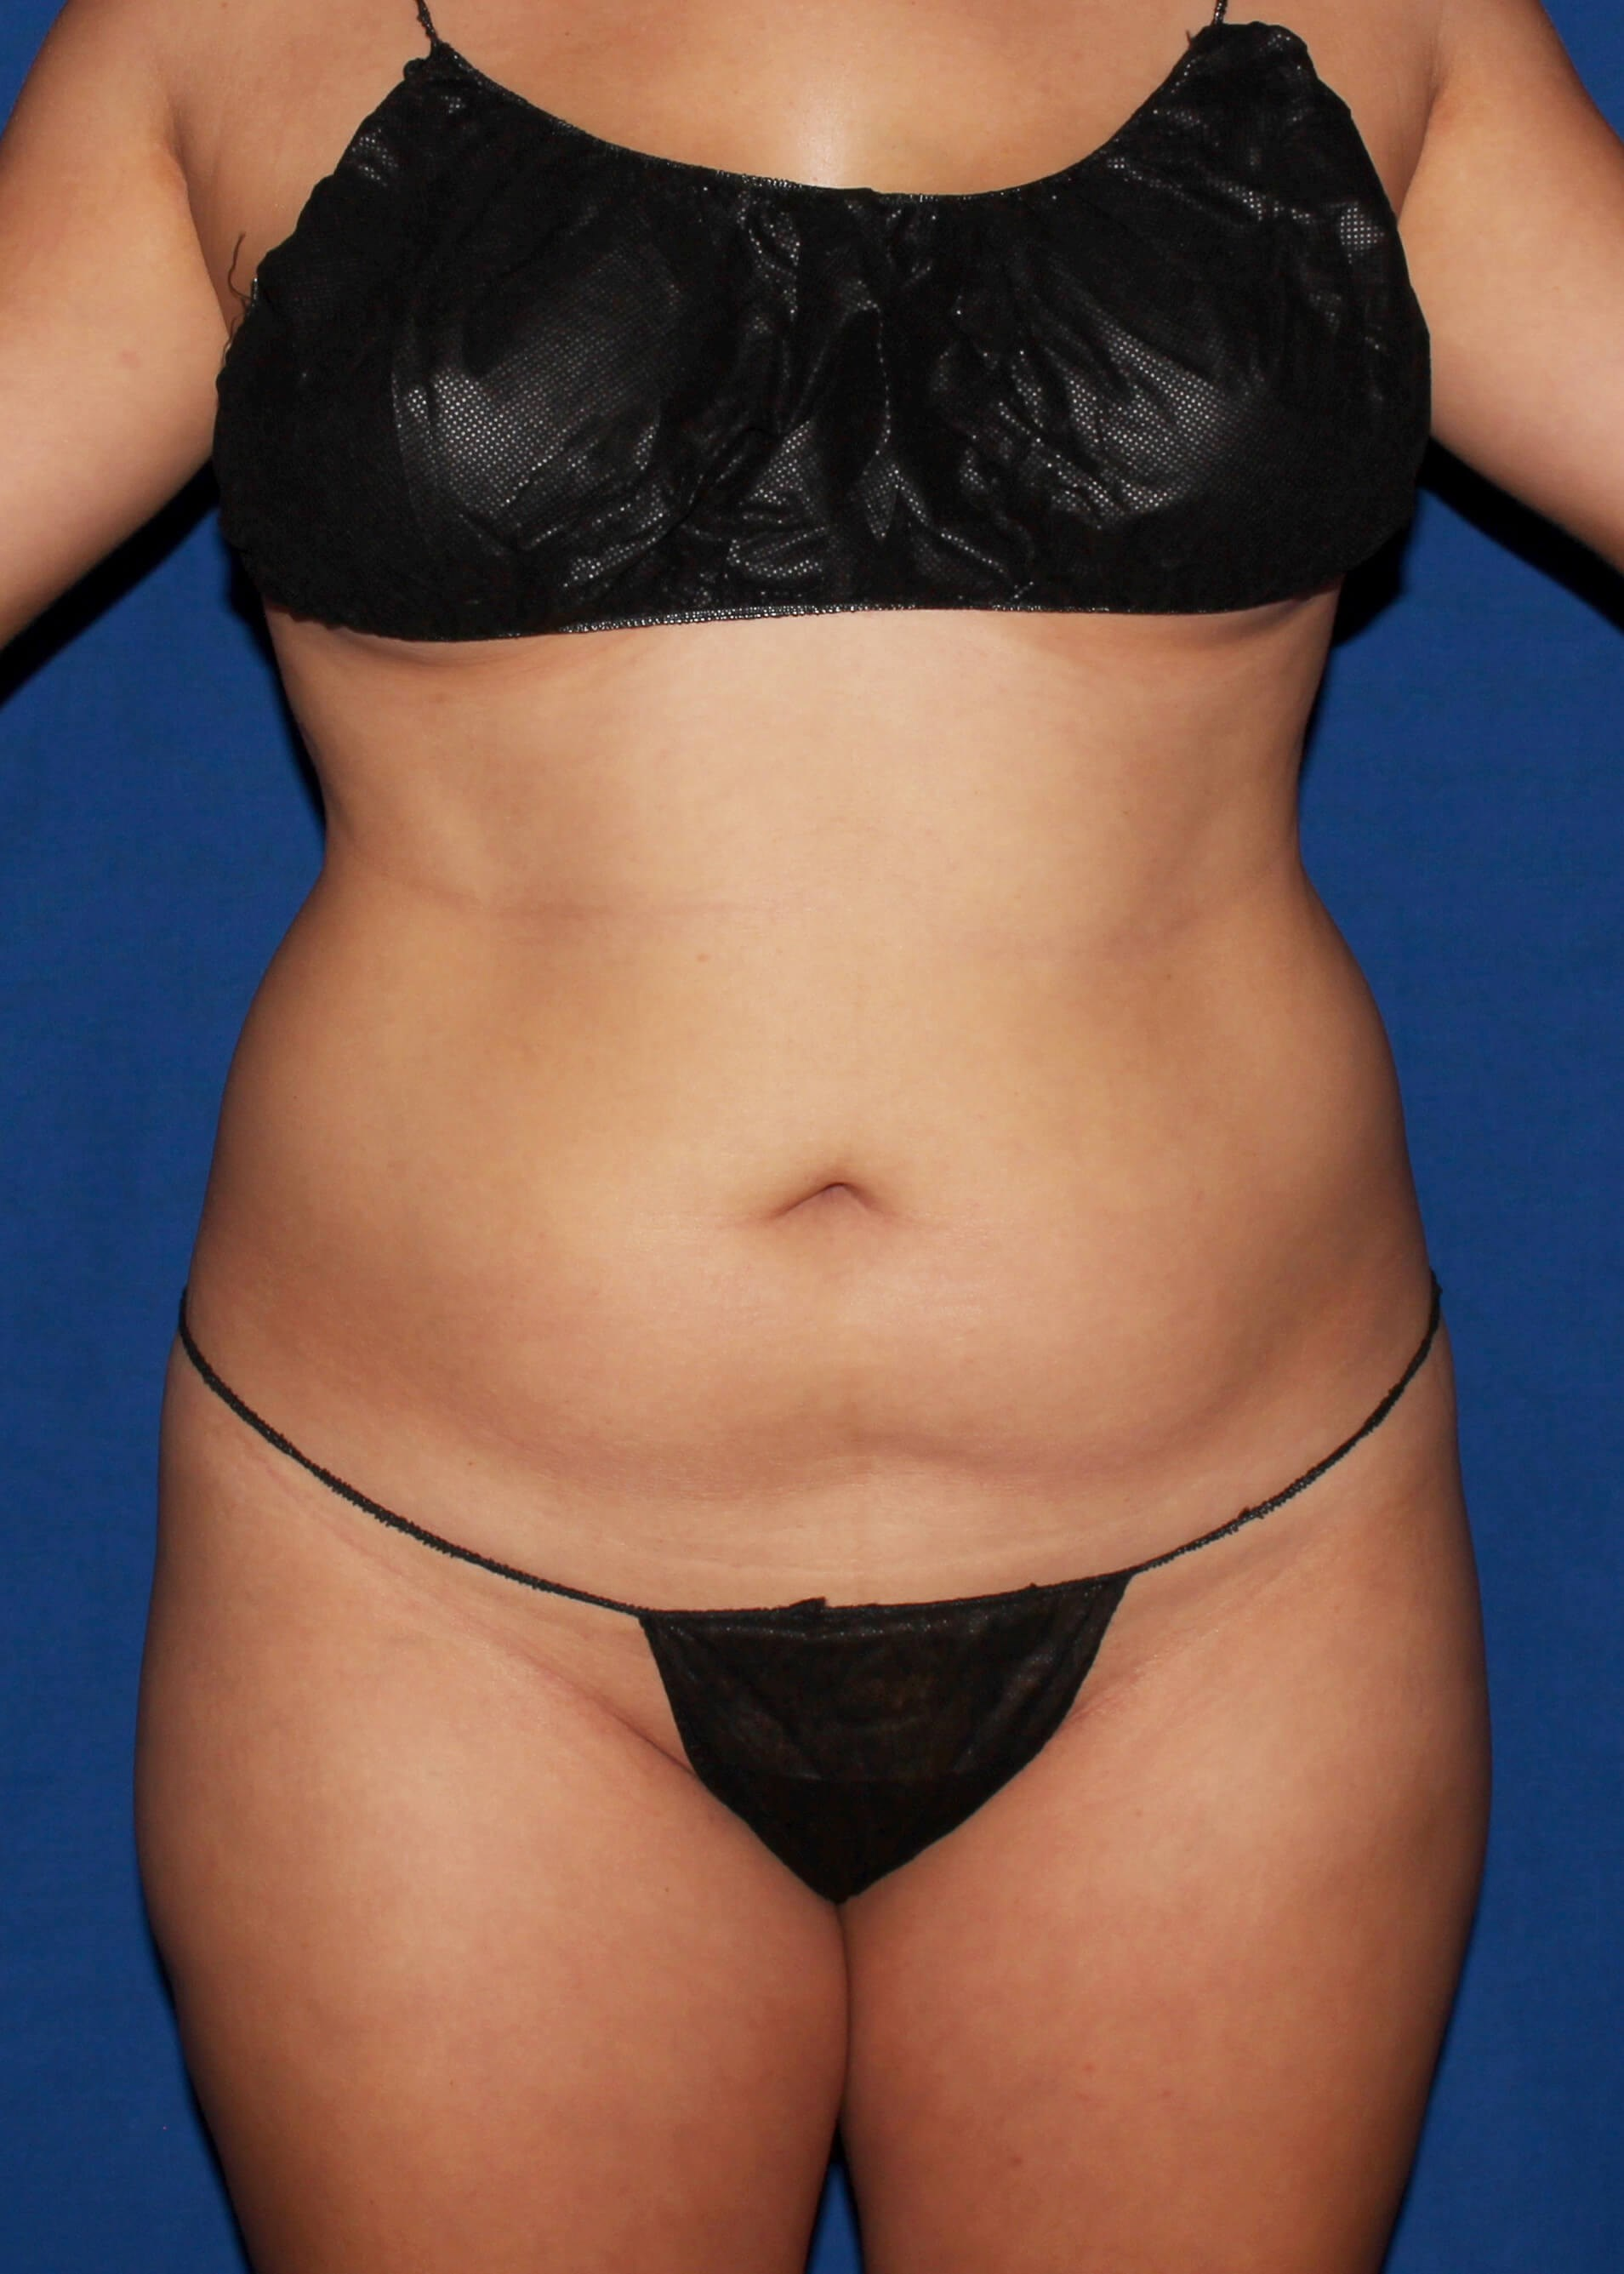 Full Torso Liposuction Before - Full Torso Lipo and safer BBL